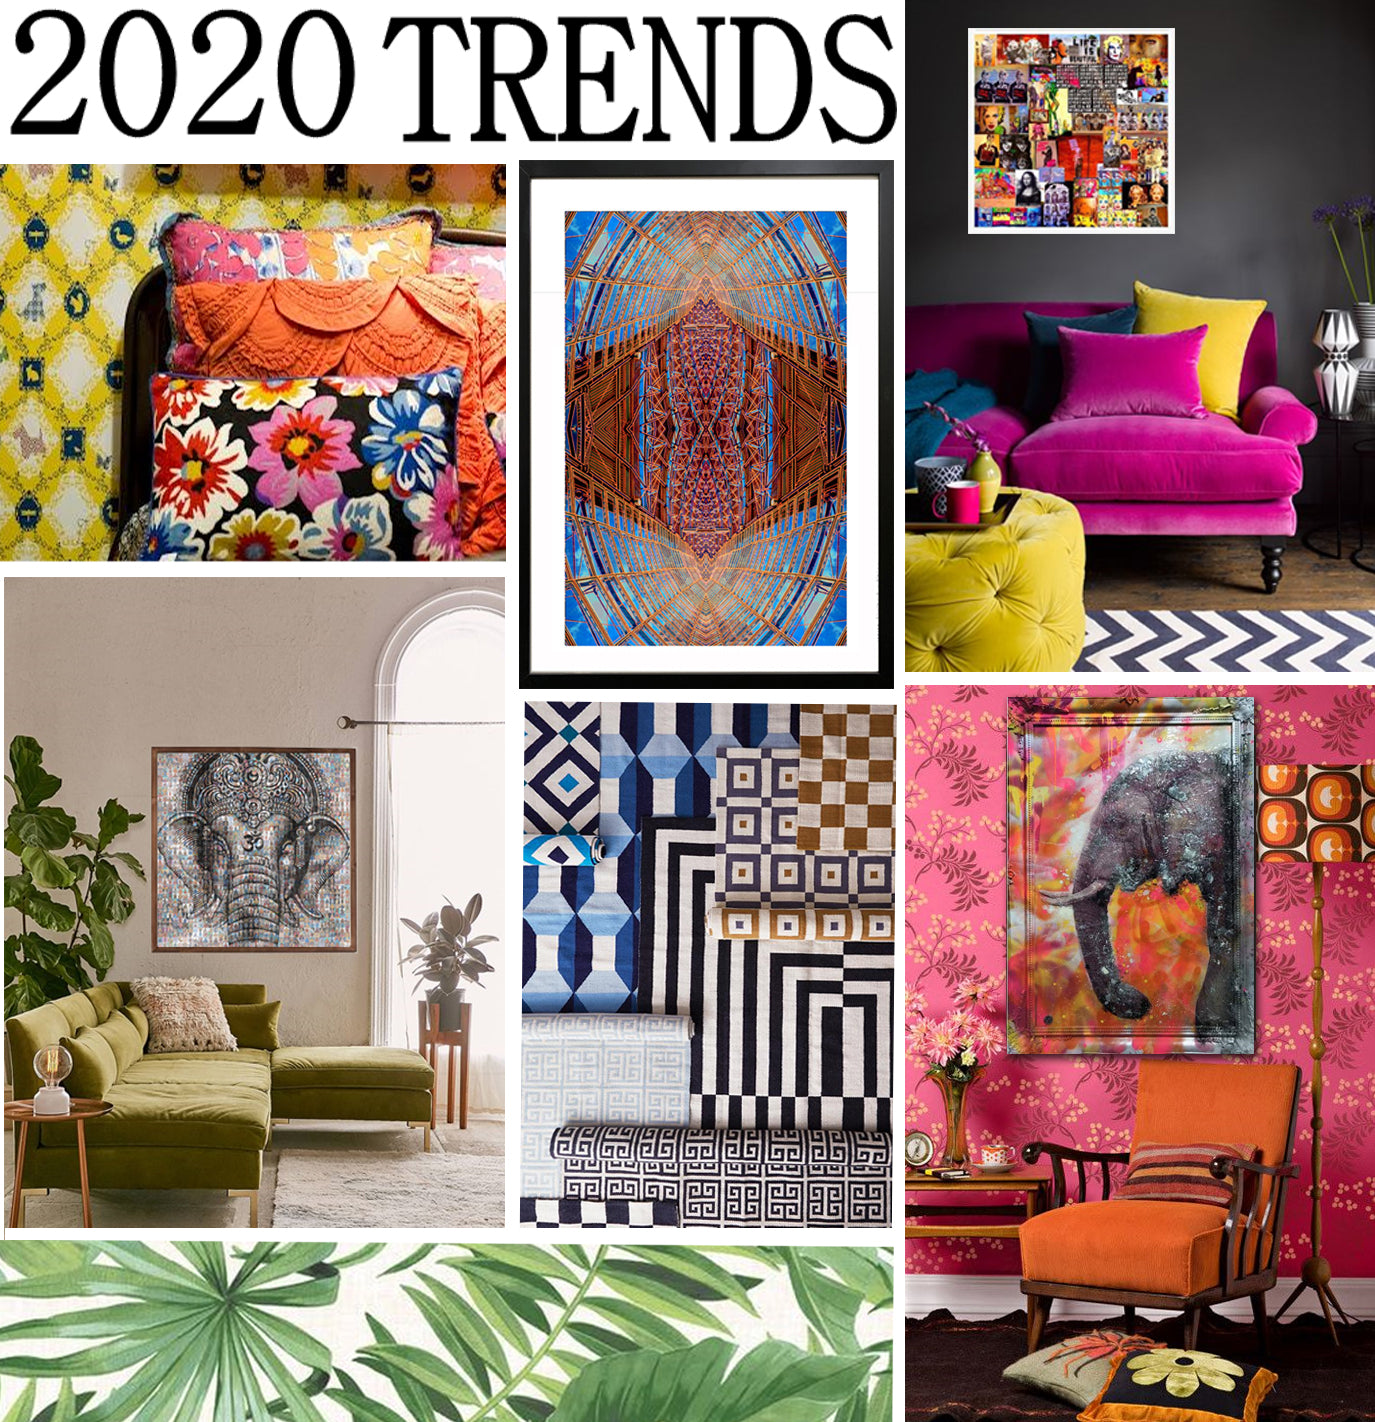 Interior and Art trends 2020